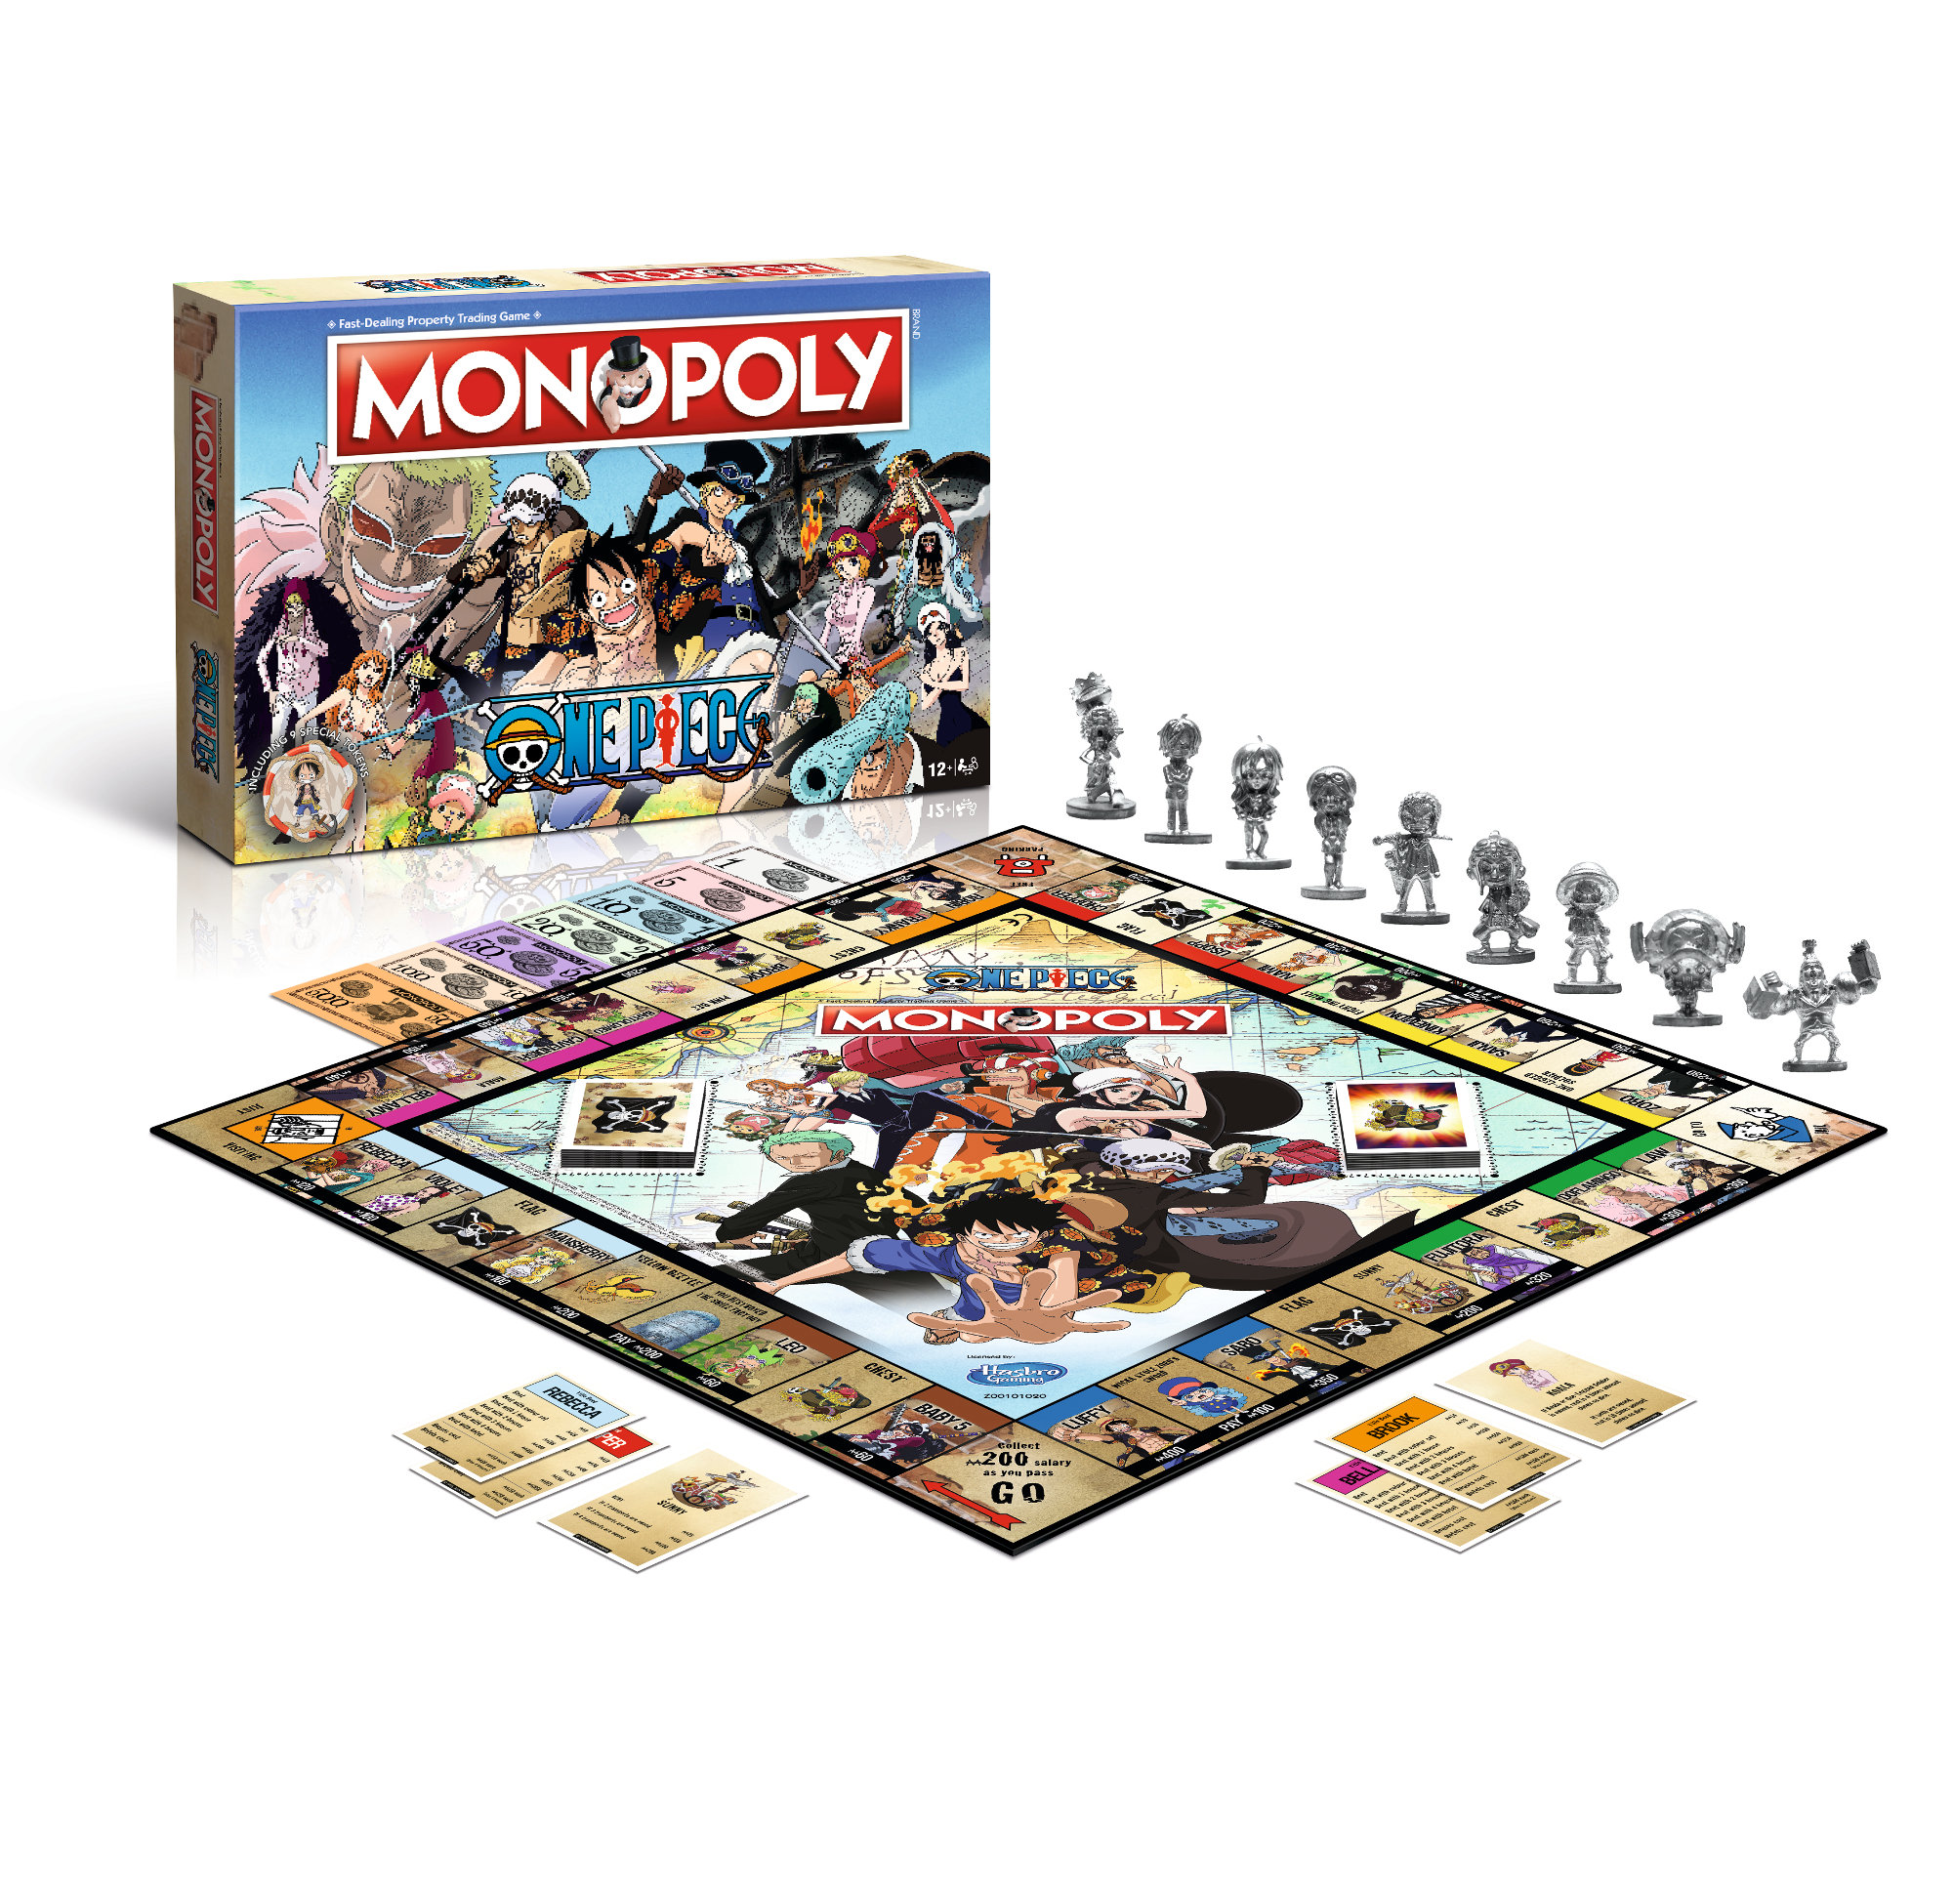 Monopoly One Piece englisch